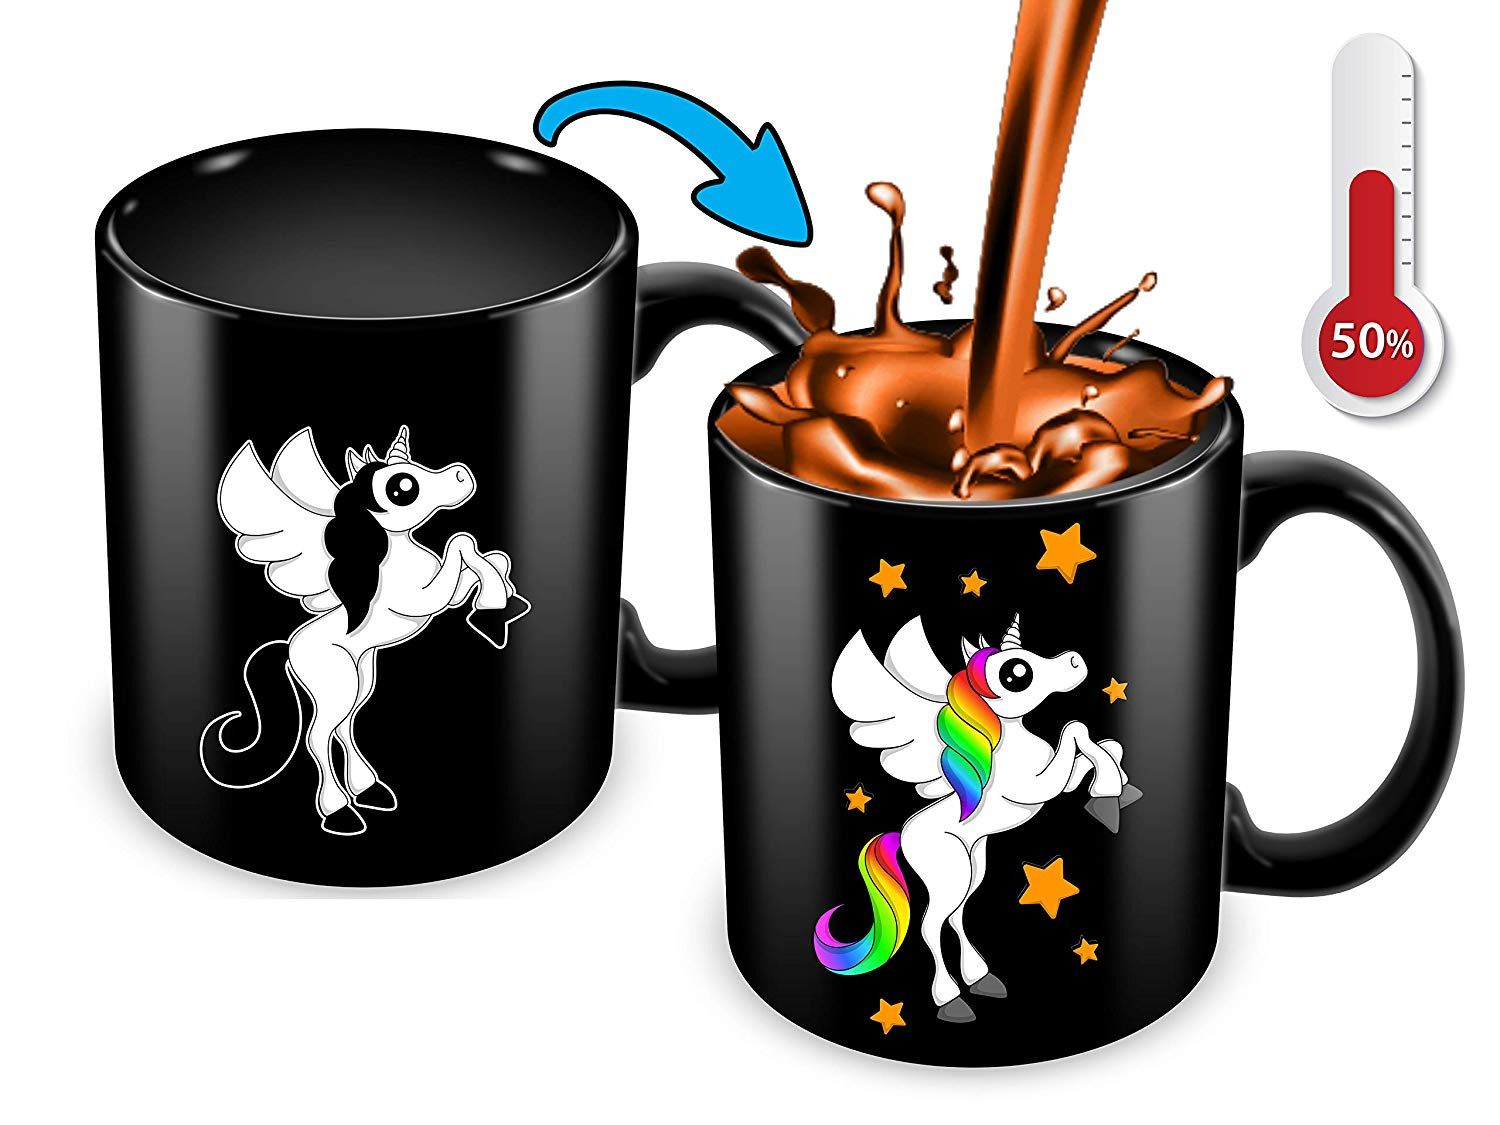 Heat Sensitive Color Changing Coffee Mug Funny Coffee Cup Black Unicorn Design Funny Gift Idea B07D21DSFL